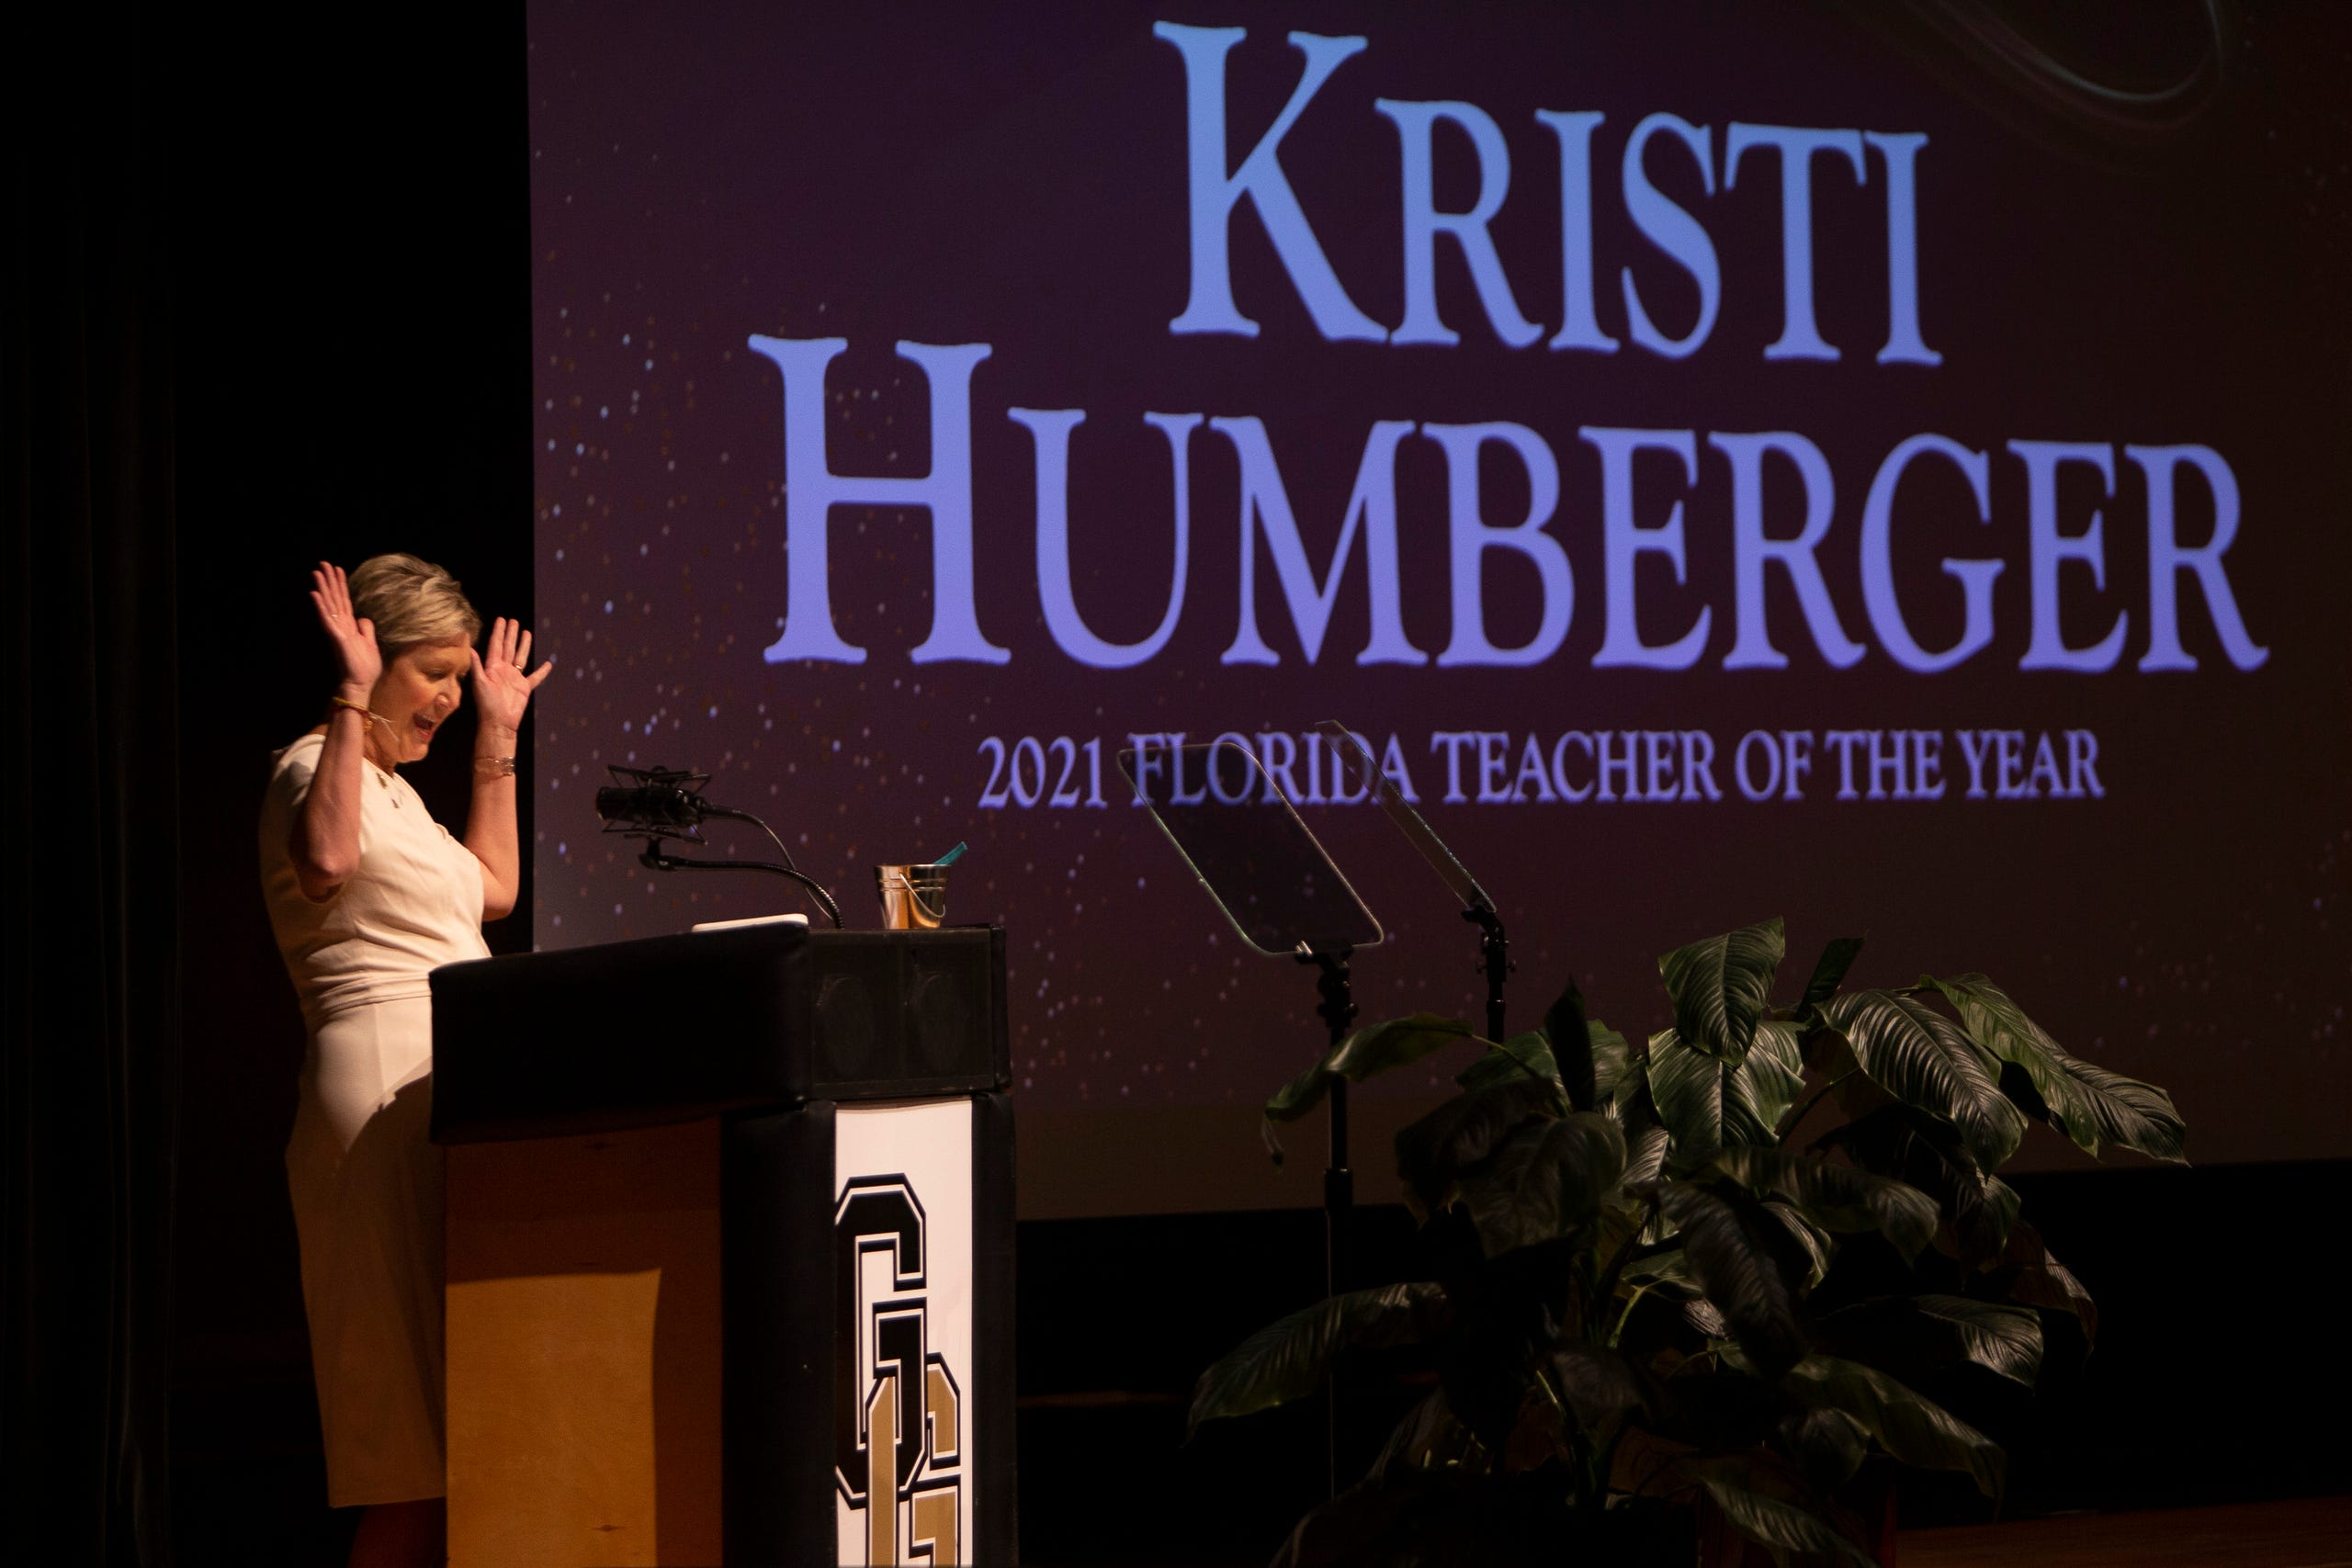 2021 Florida Teacher of the Year recipient Kristi Humberger speaks to her colleagues during the 2021-22 Opening of Schools ceremony, Wednesday, Aug. 4, 2021, at Golden Gate High School.